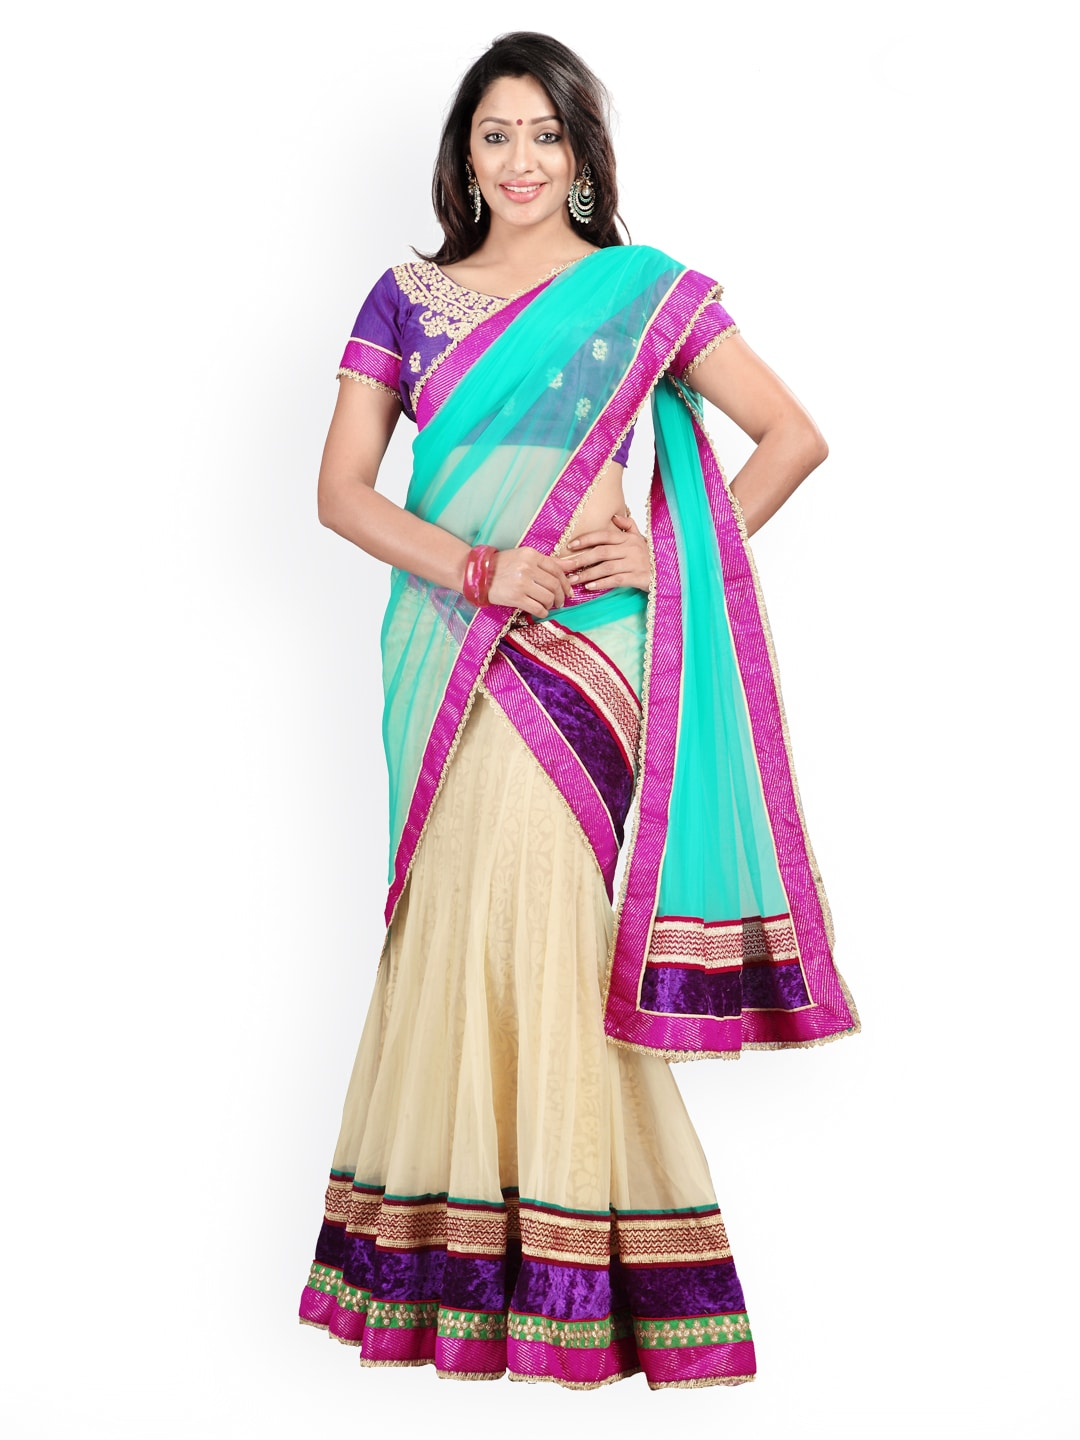 Florence Cream-Coloured & Purple Net & Brasso Semi-Stitched Lehenga Choli Material with Dupatta